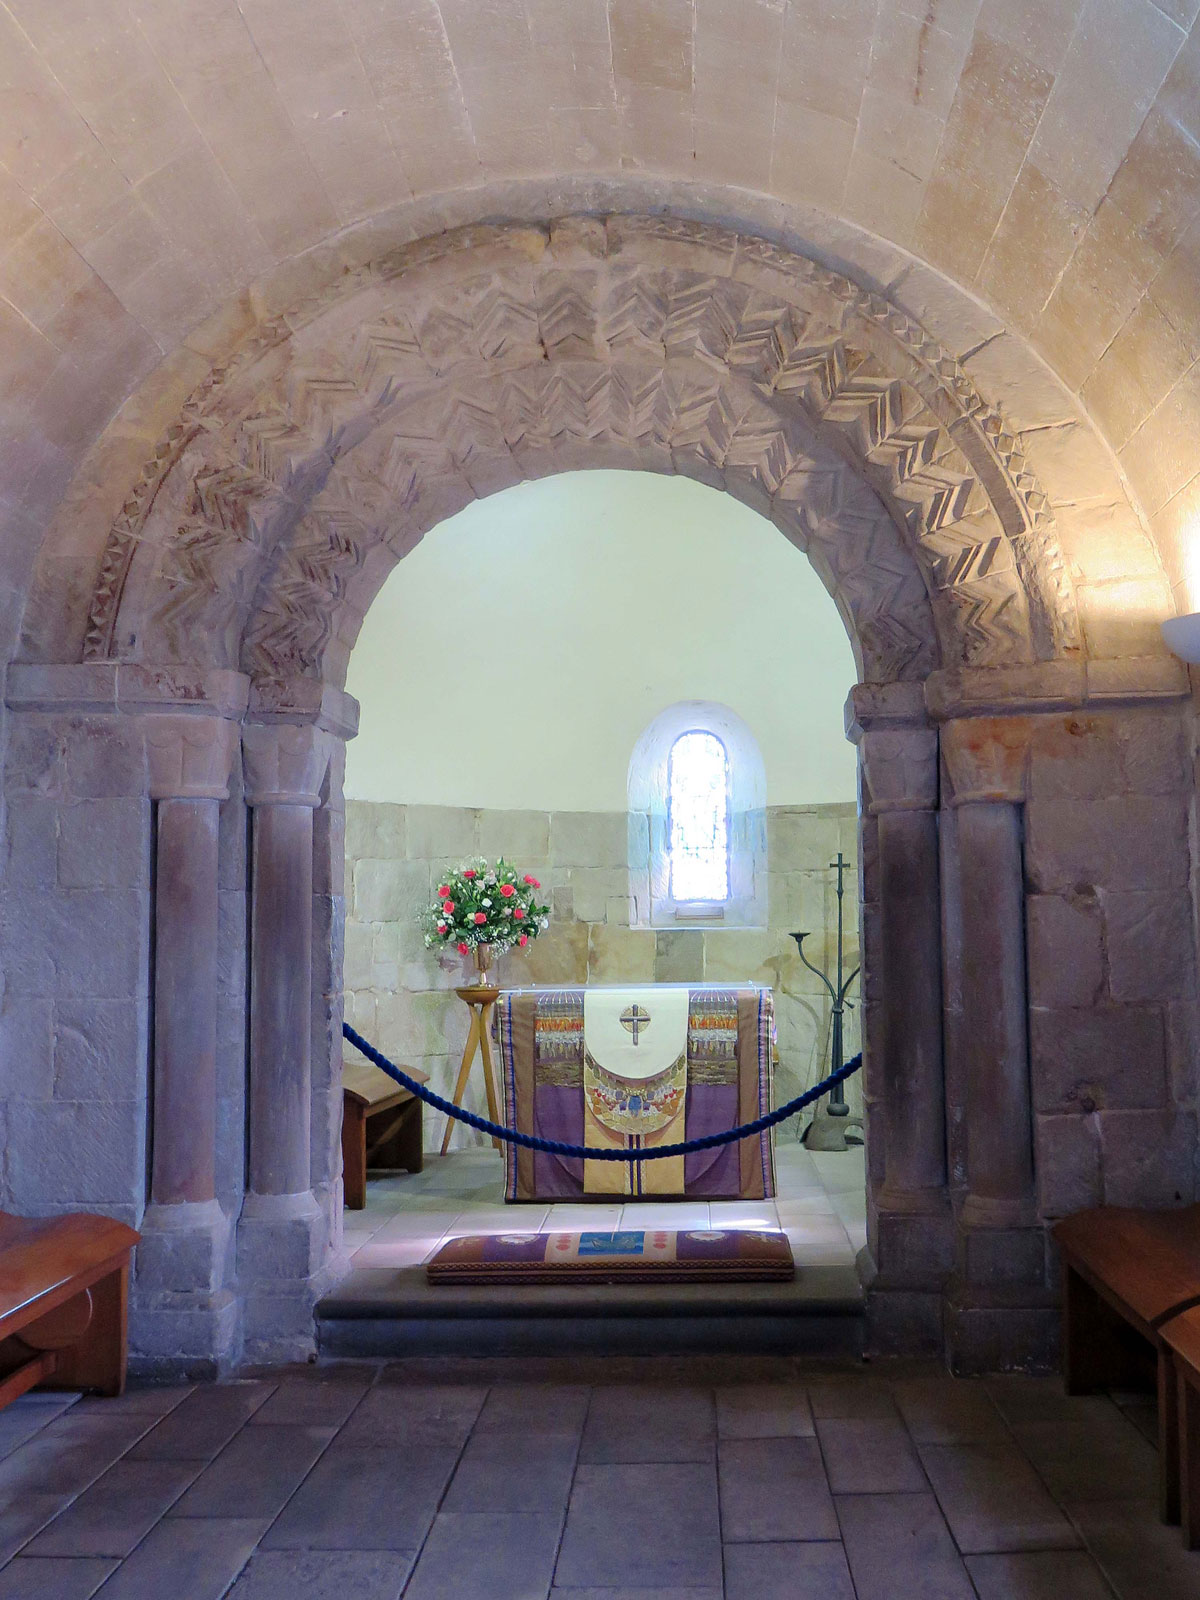 Inside St Margaret's Chapel